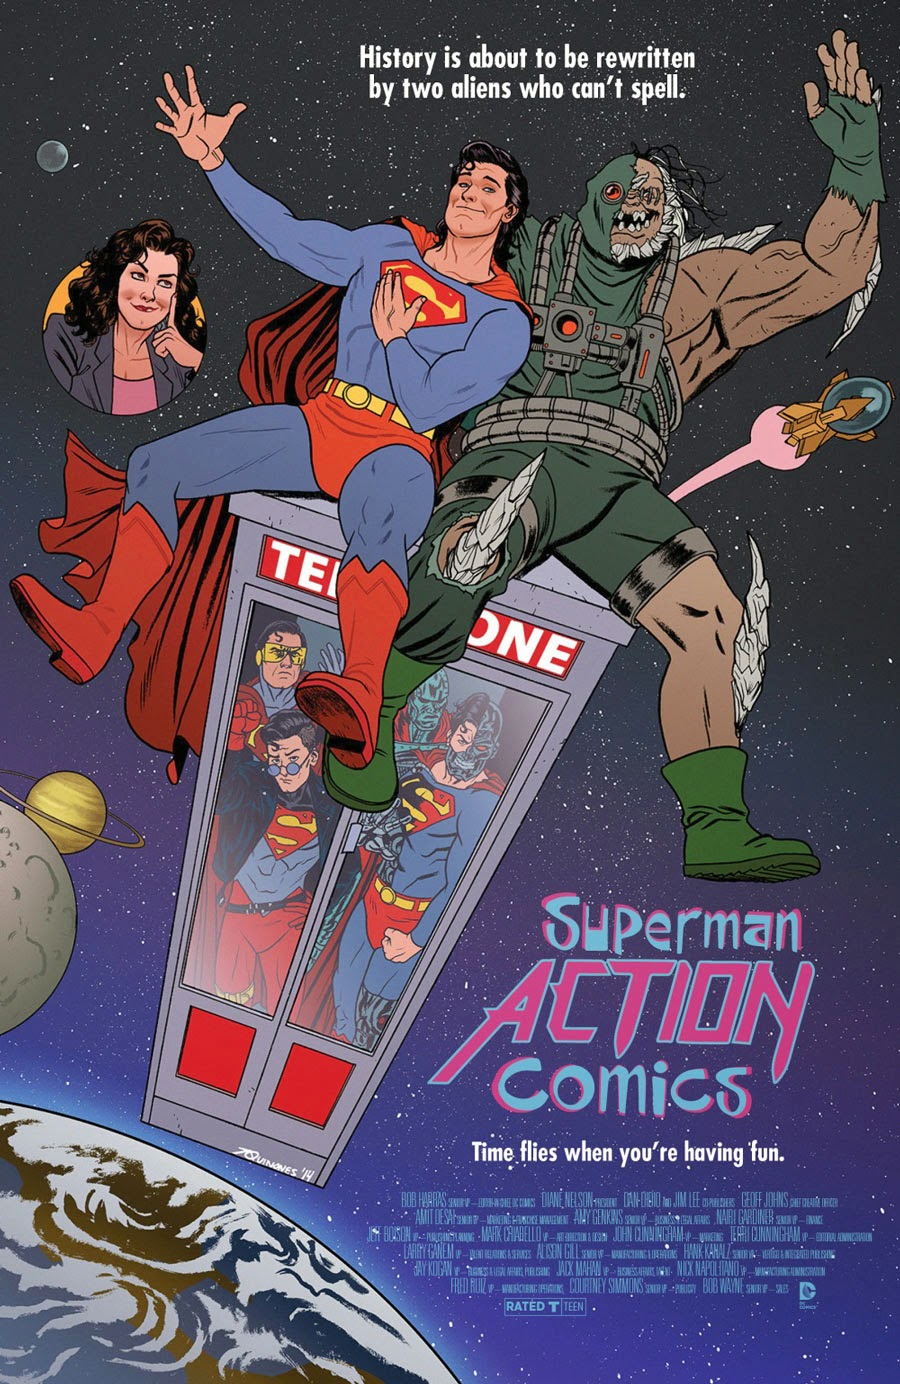 Action Comics / Bill and Ted's Excellent Adventure